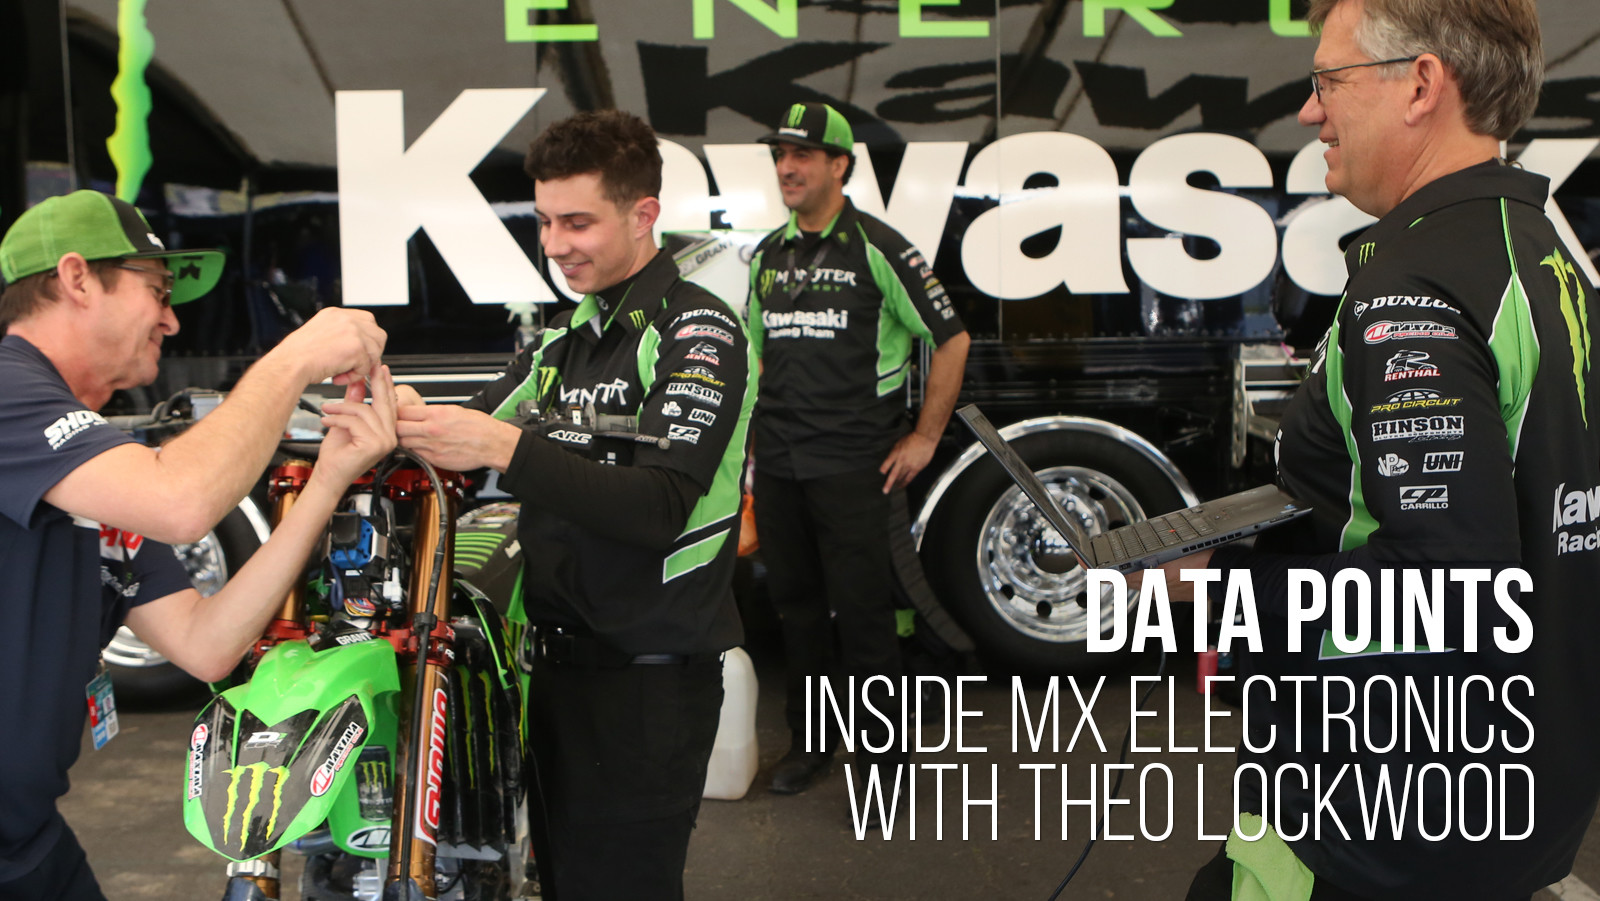 Data Points: Inside MX Electronics With Theo Lockwood